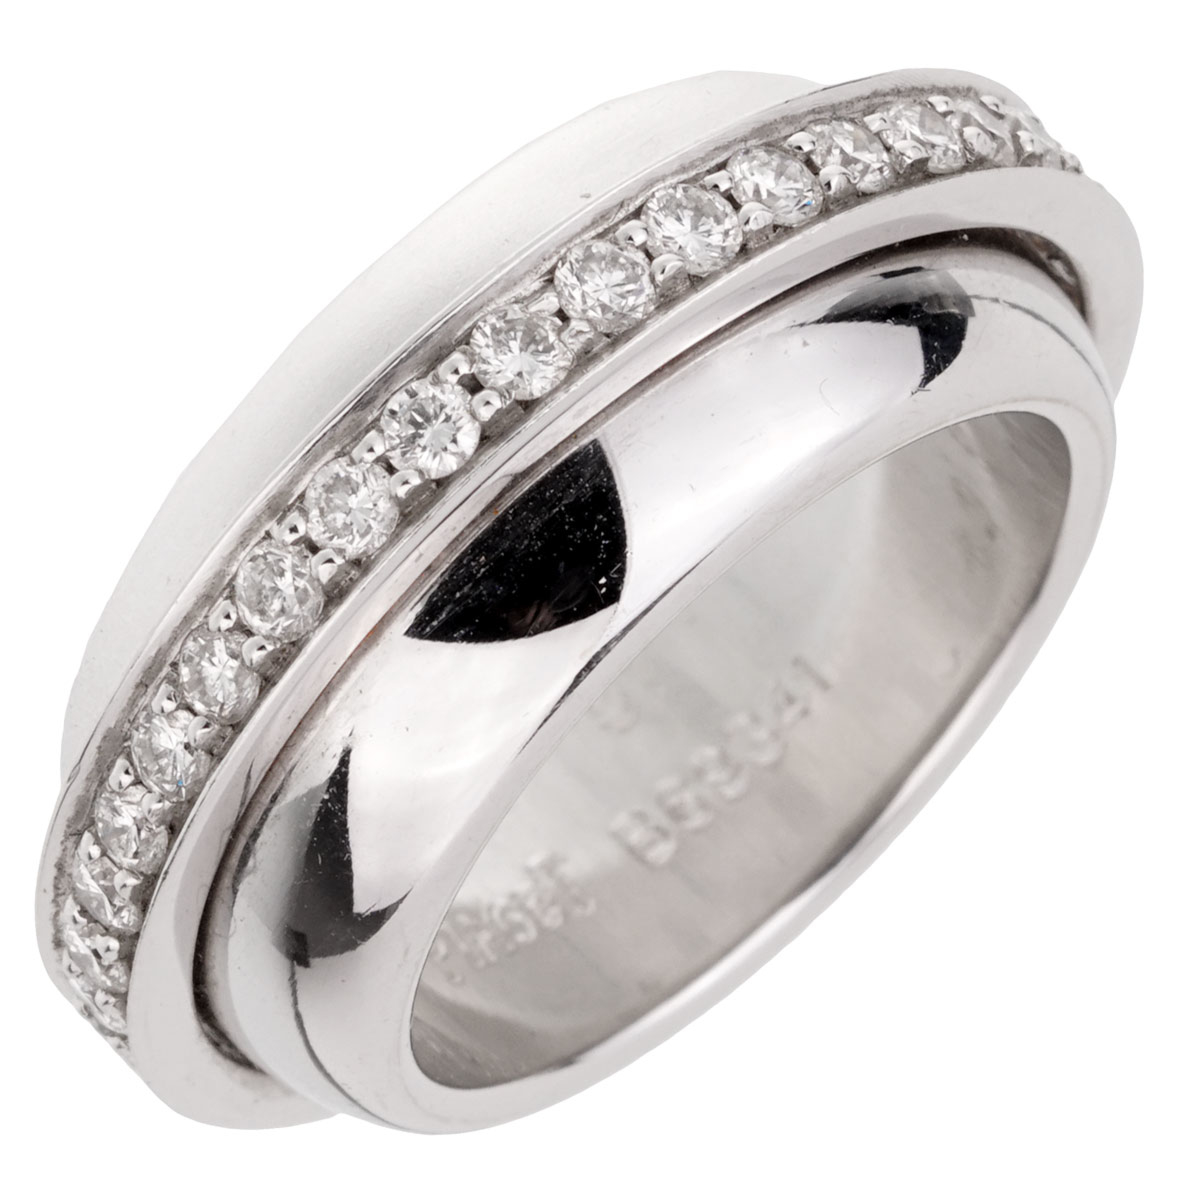 Piaget Possession White Gold Diamond Ring Sz 5 1/2